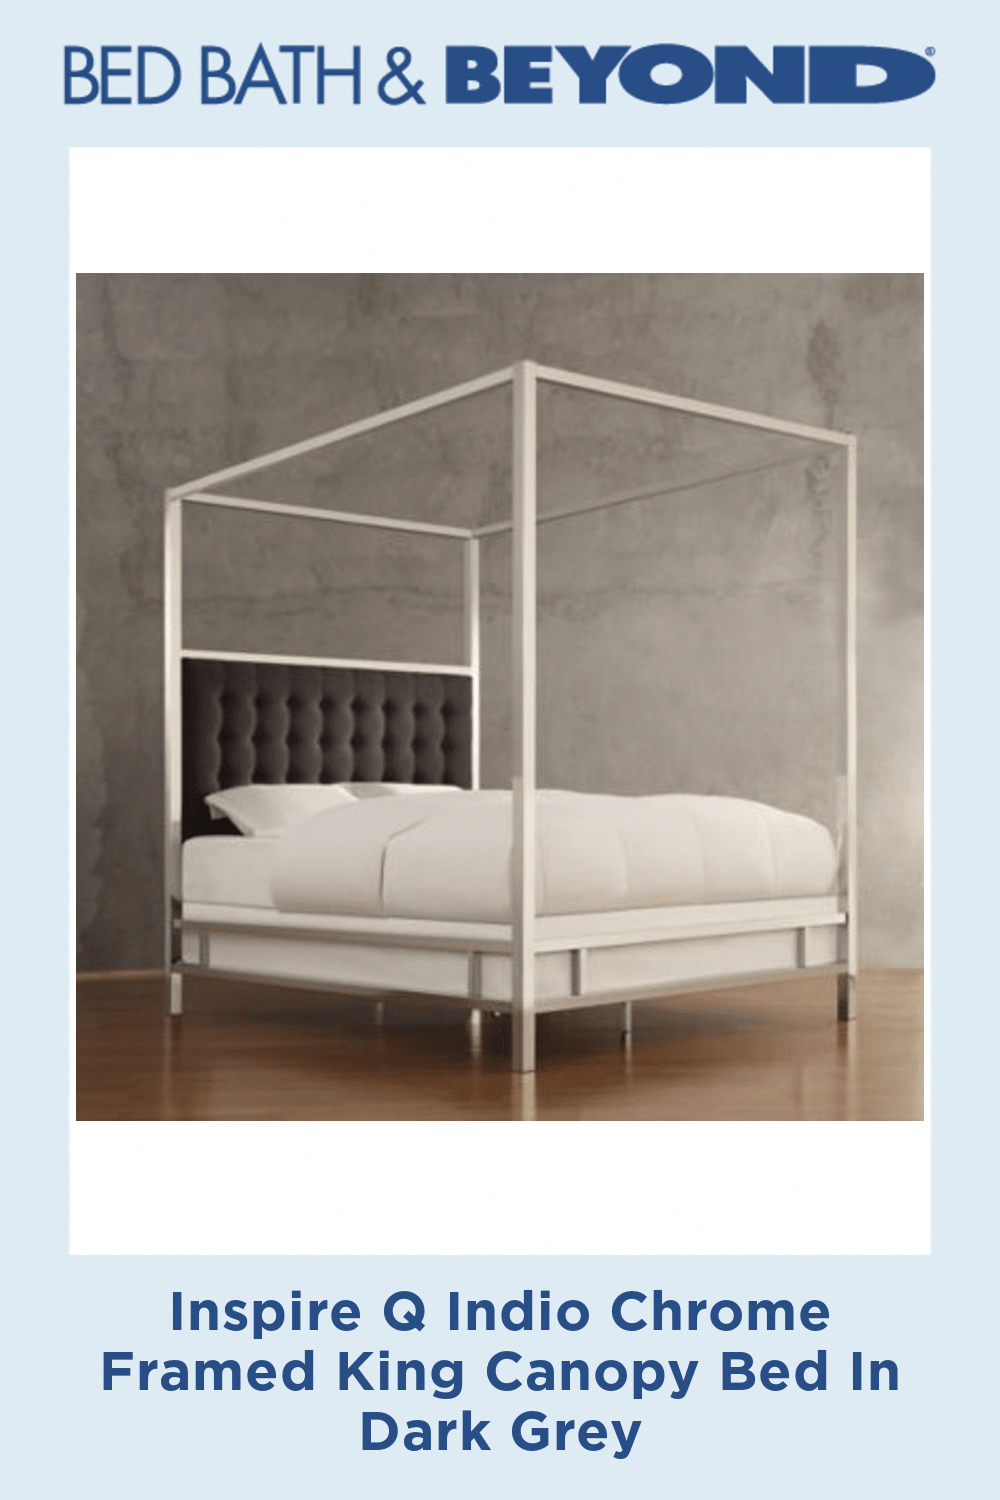 inspire q canopy bed on carpets of dalton furniture furniture7customerservice code 2403813240 canopy bed black bedroom furniture bed interior carpets of dalton furniture